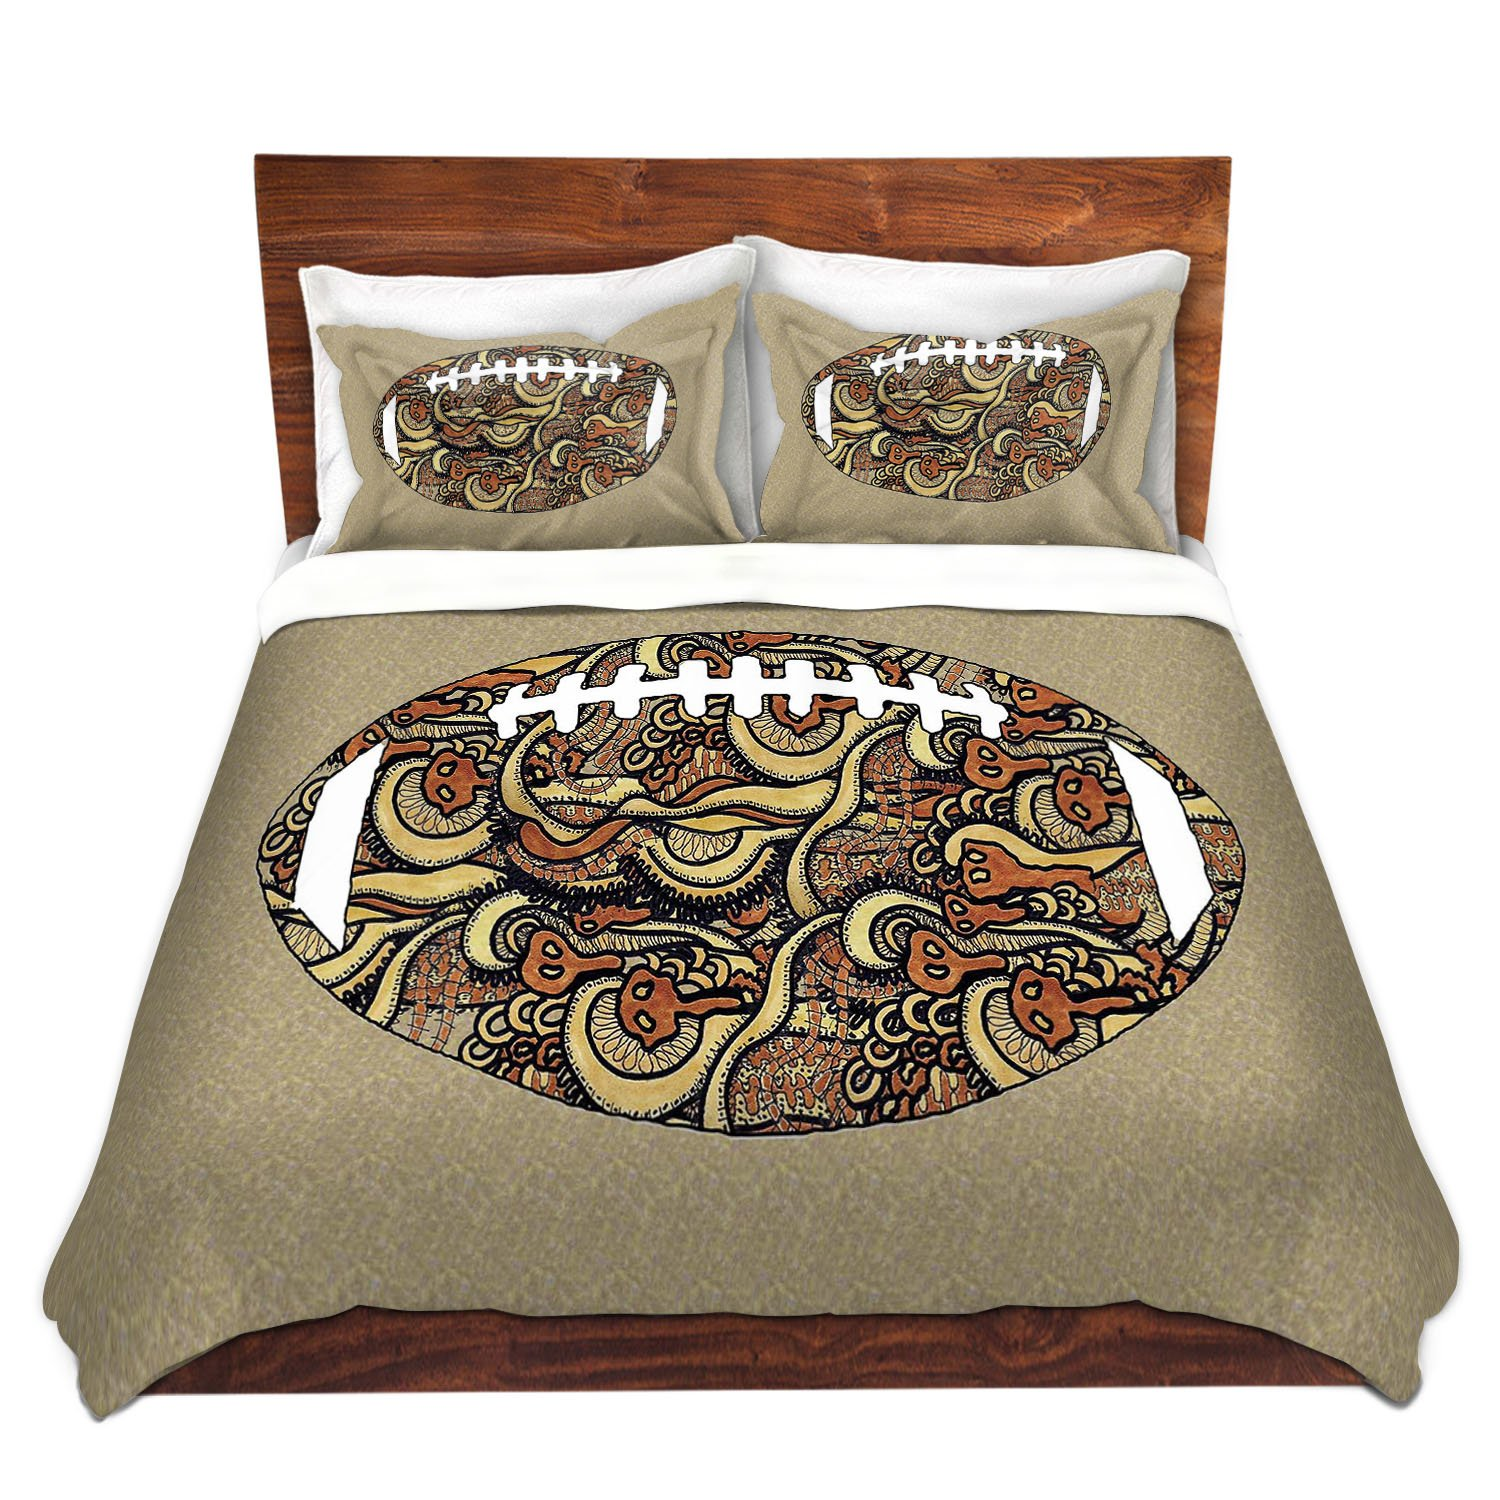 DiaNoche Designs Microfiber Duvet Covers Susie Kunzelman - Football Away Game by DiaNoche Designs (Image #2)